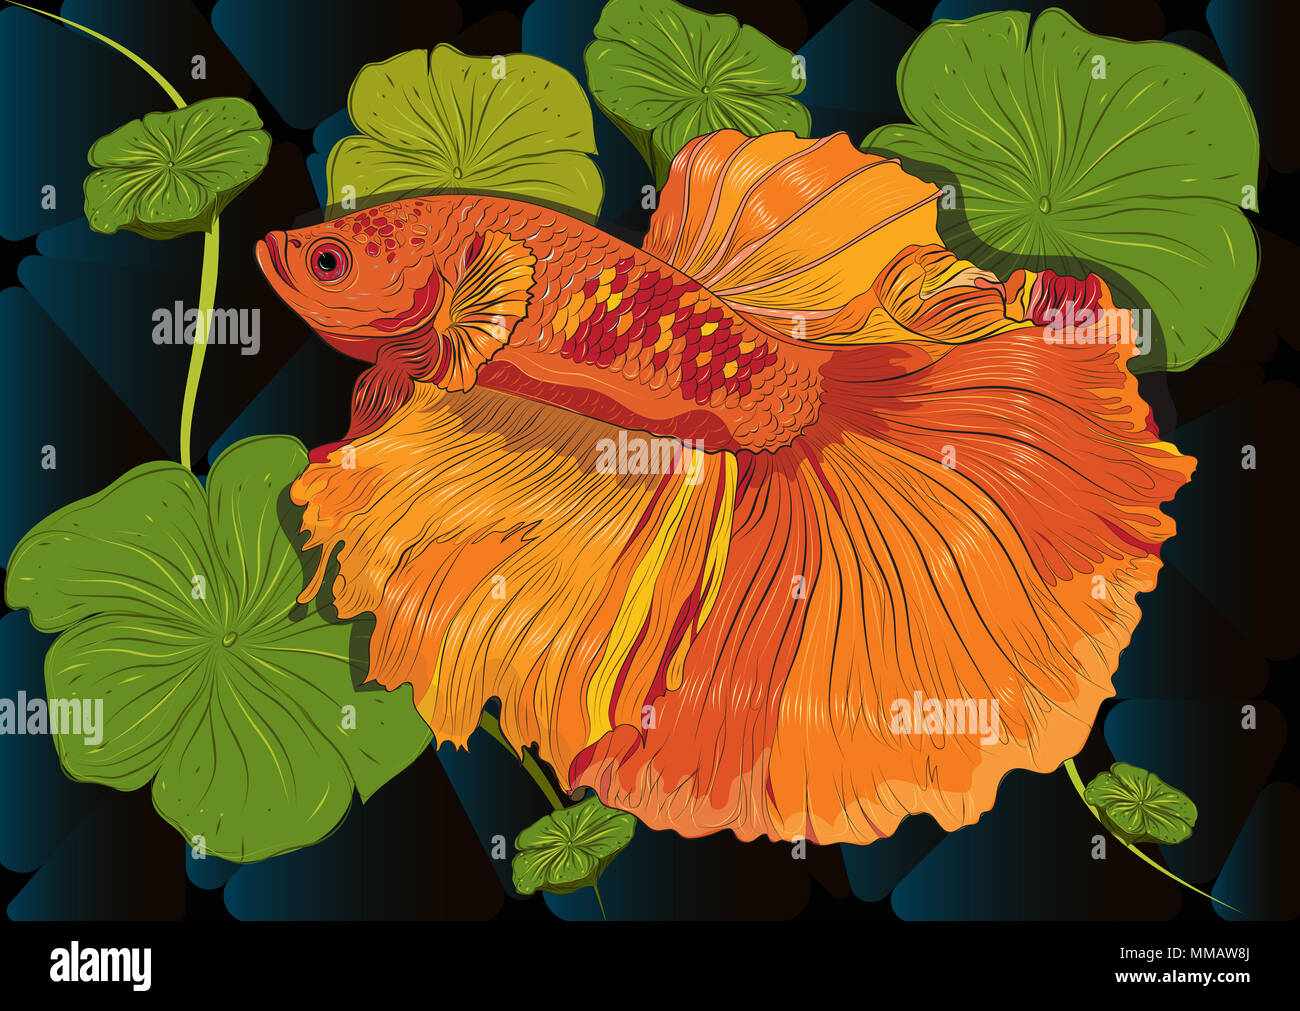 Vector color drawing of  betta or simese fighting fish illustation. Stock Photo